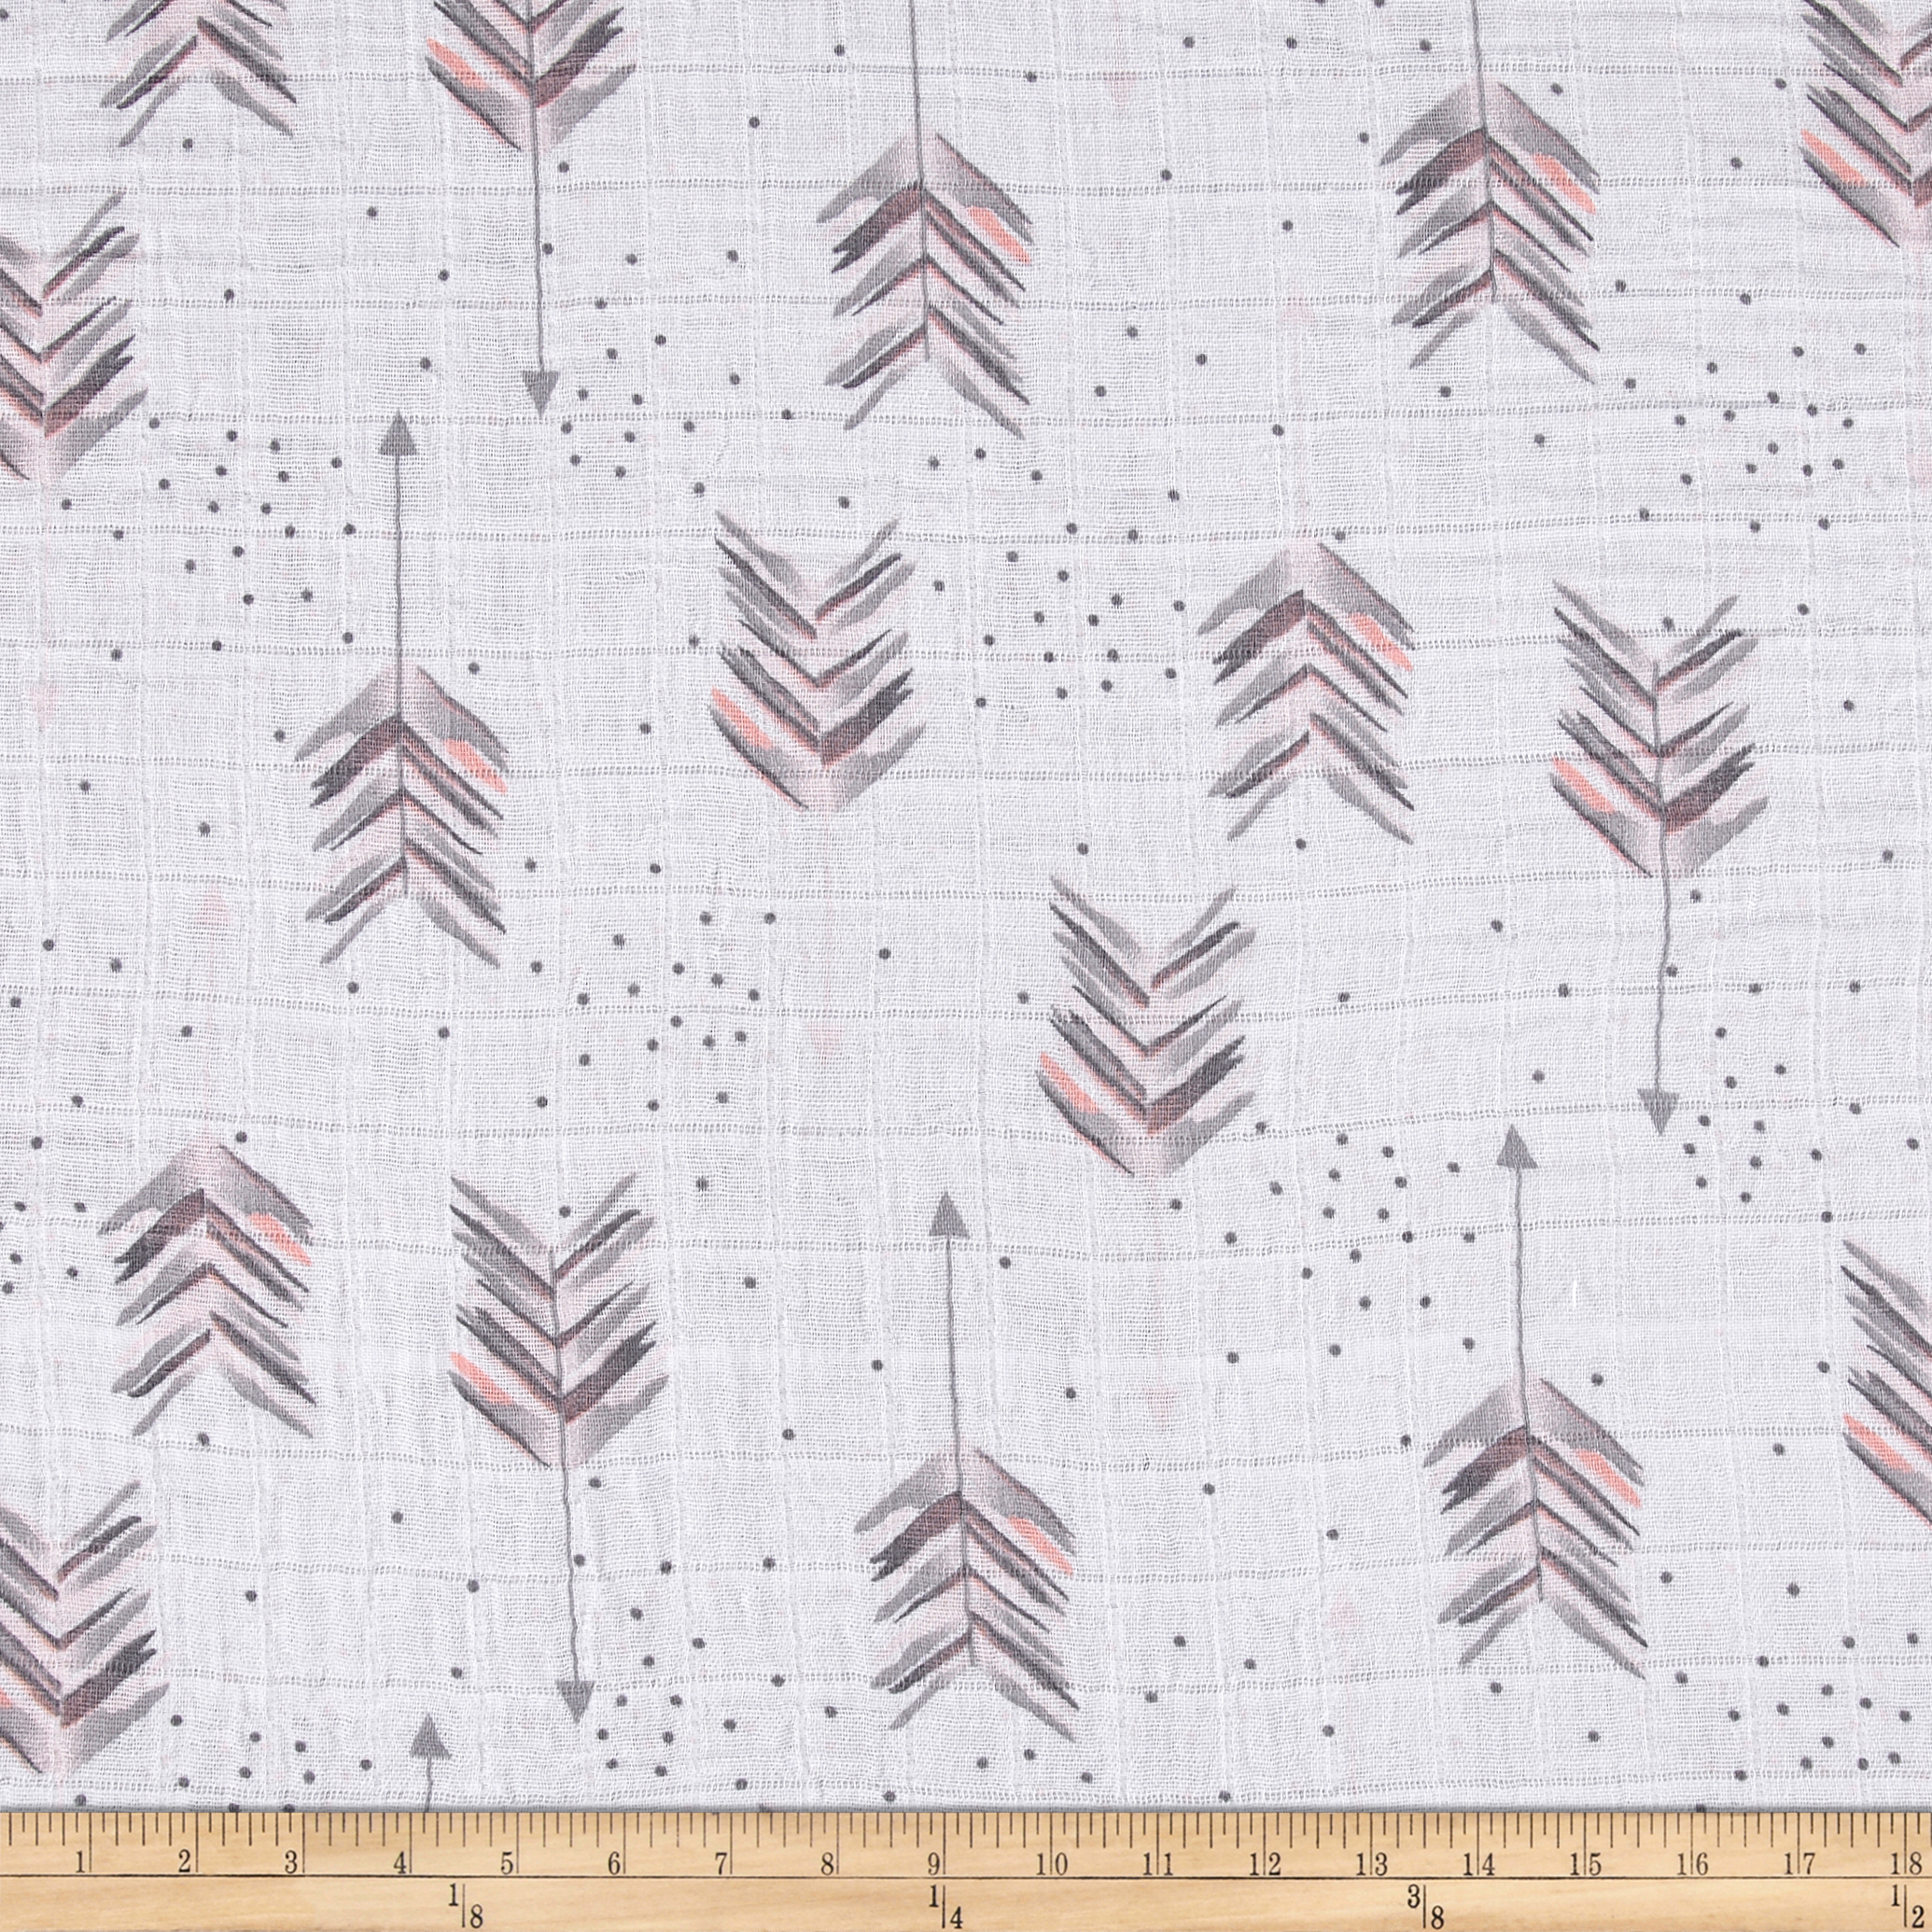 Shannon Embrace Double Gauze Aim High Pink Fabric by Shannon in USA